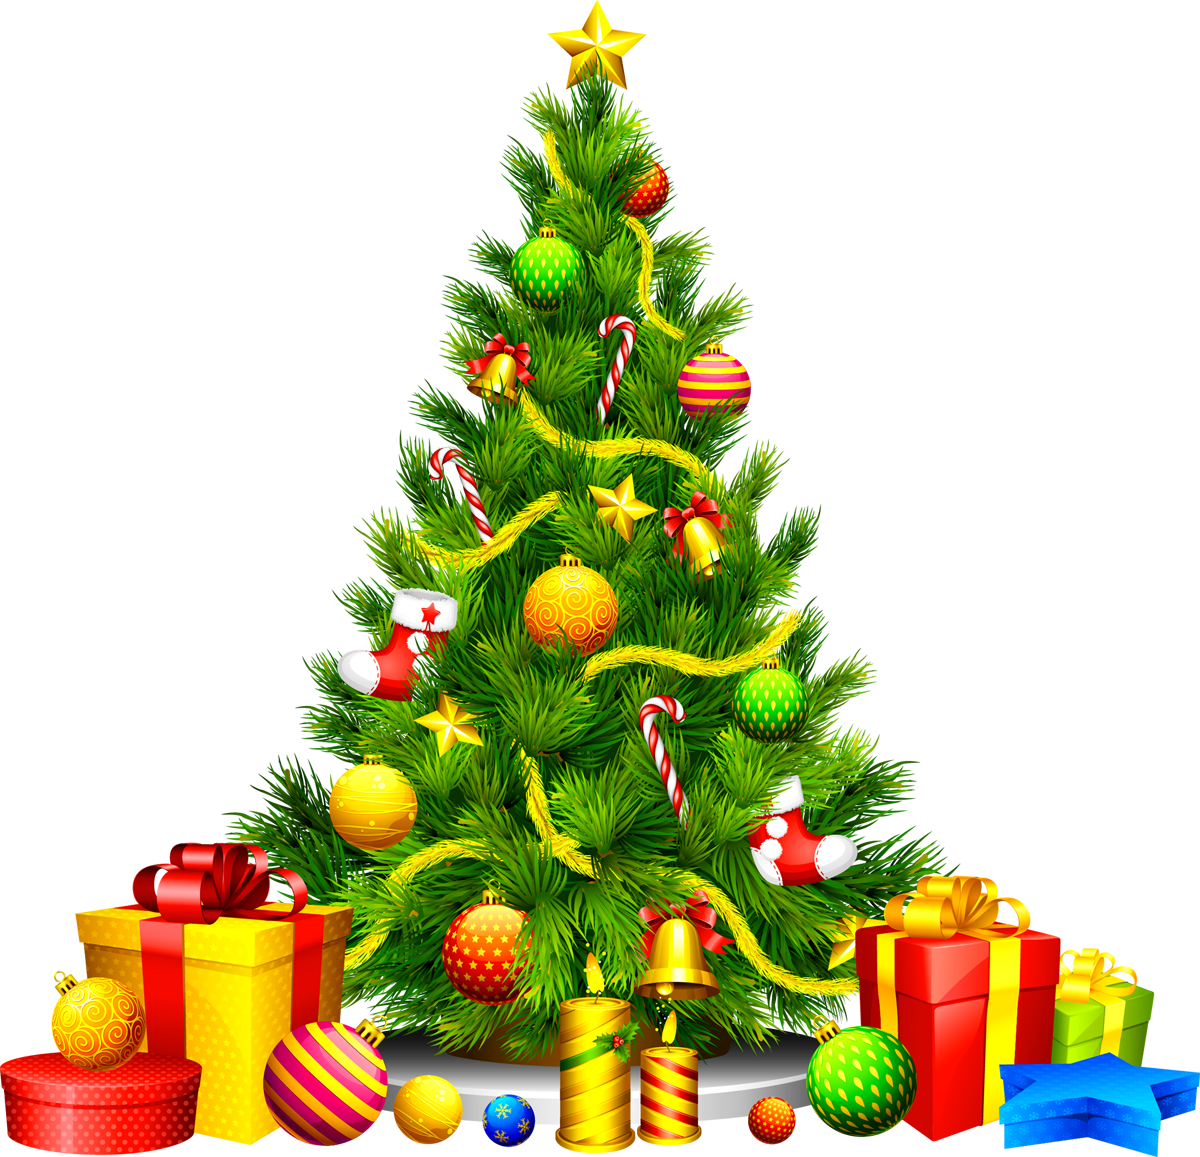 Christmas Graphics Transparent.Christmas Graphics Png Imges Free Download